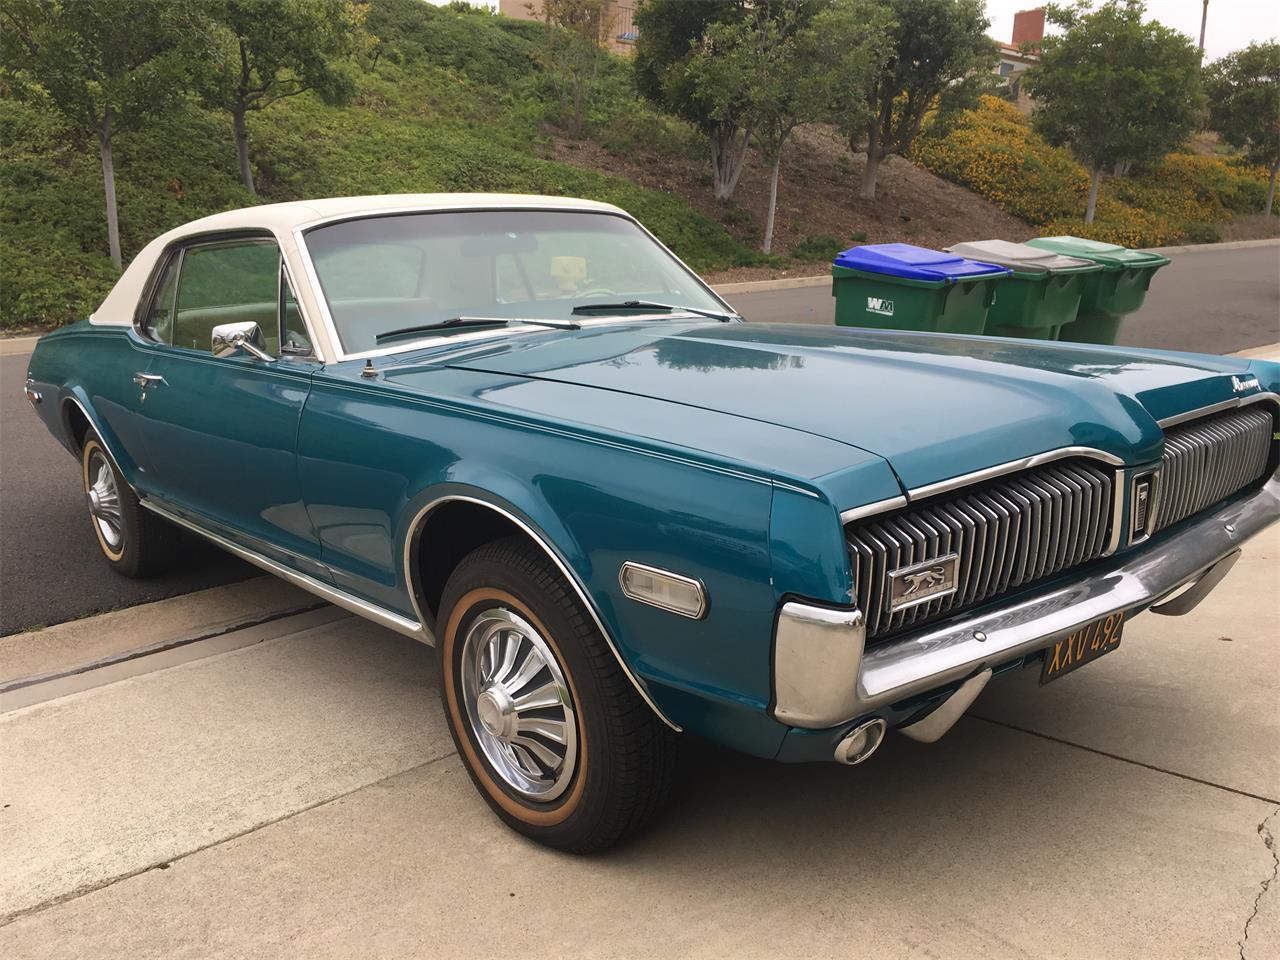 Large Picture of Classic '68 Mercury Cougar  - $20,000.00 Offered by a Private Seller - L6MB